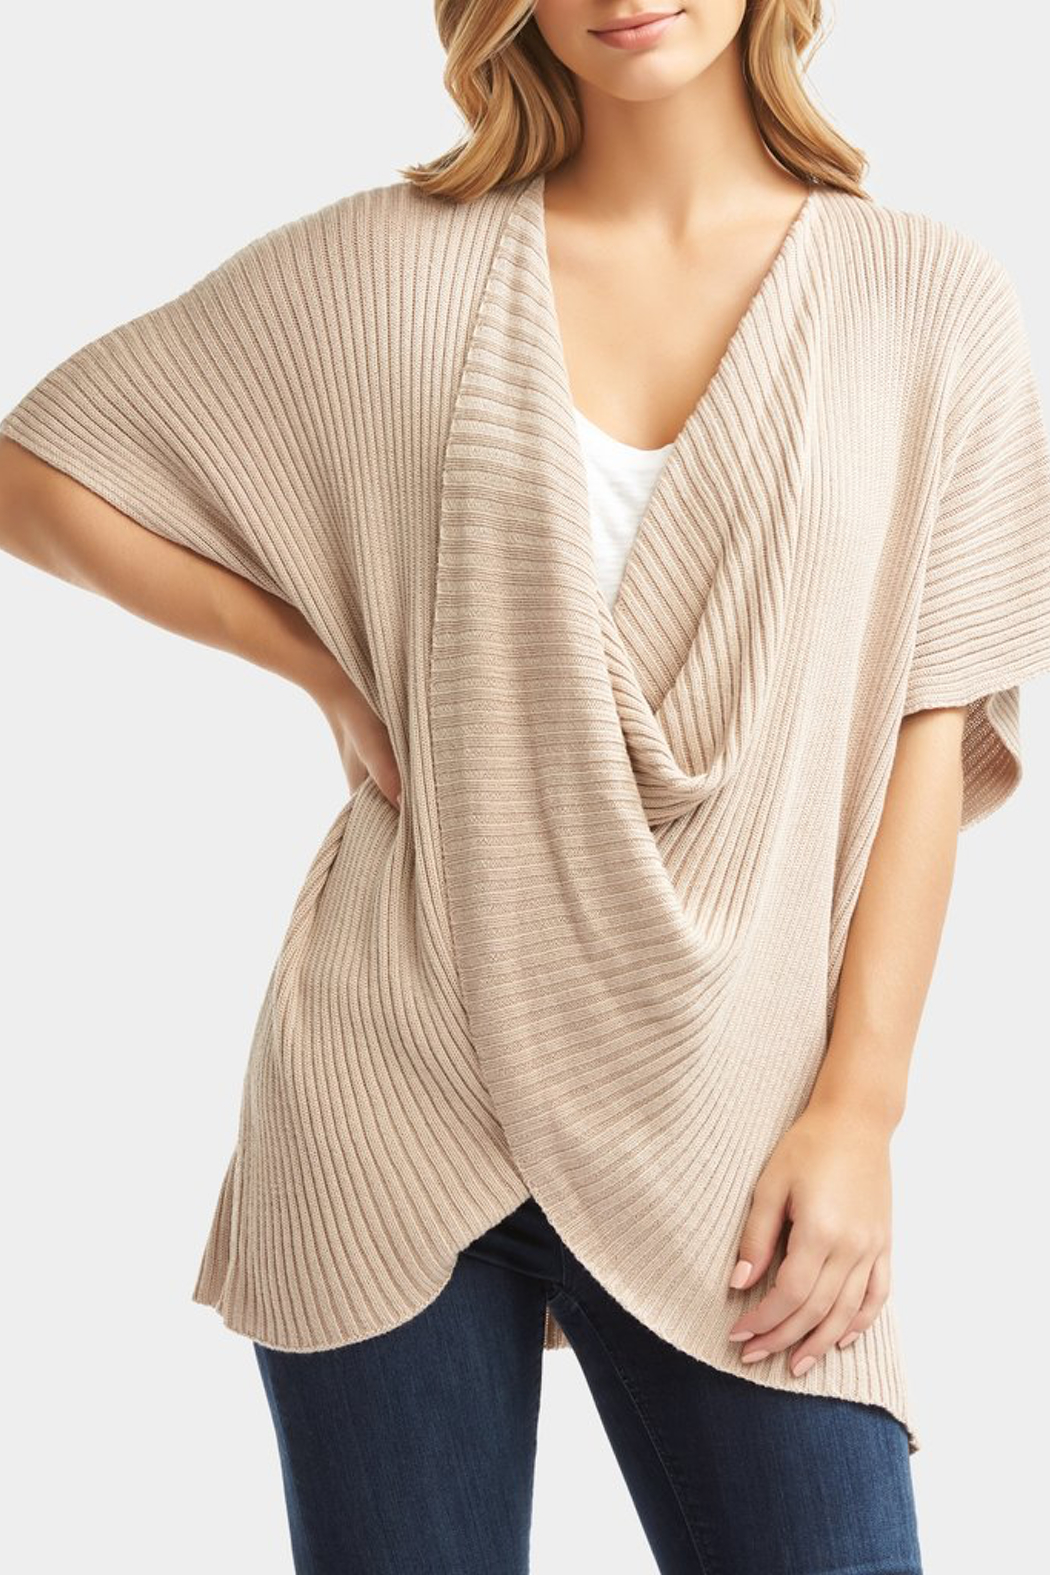 Tart Collections Taja Wrap Top - Side Cropped Image